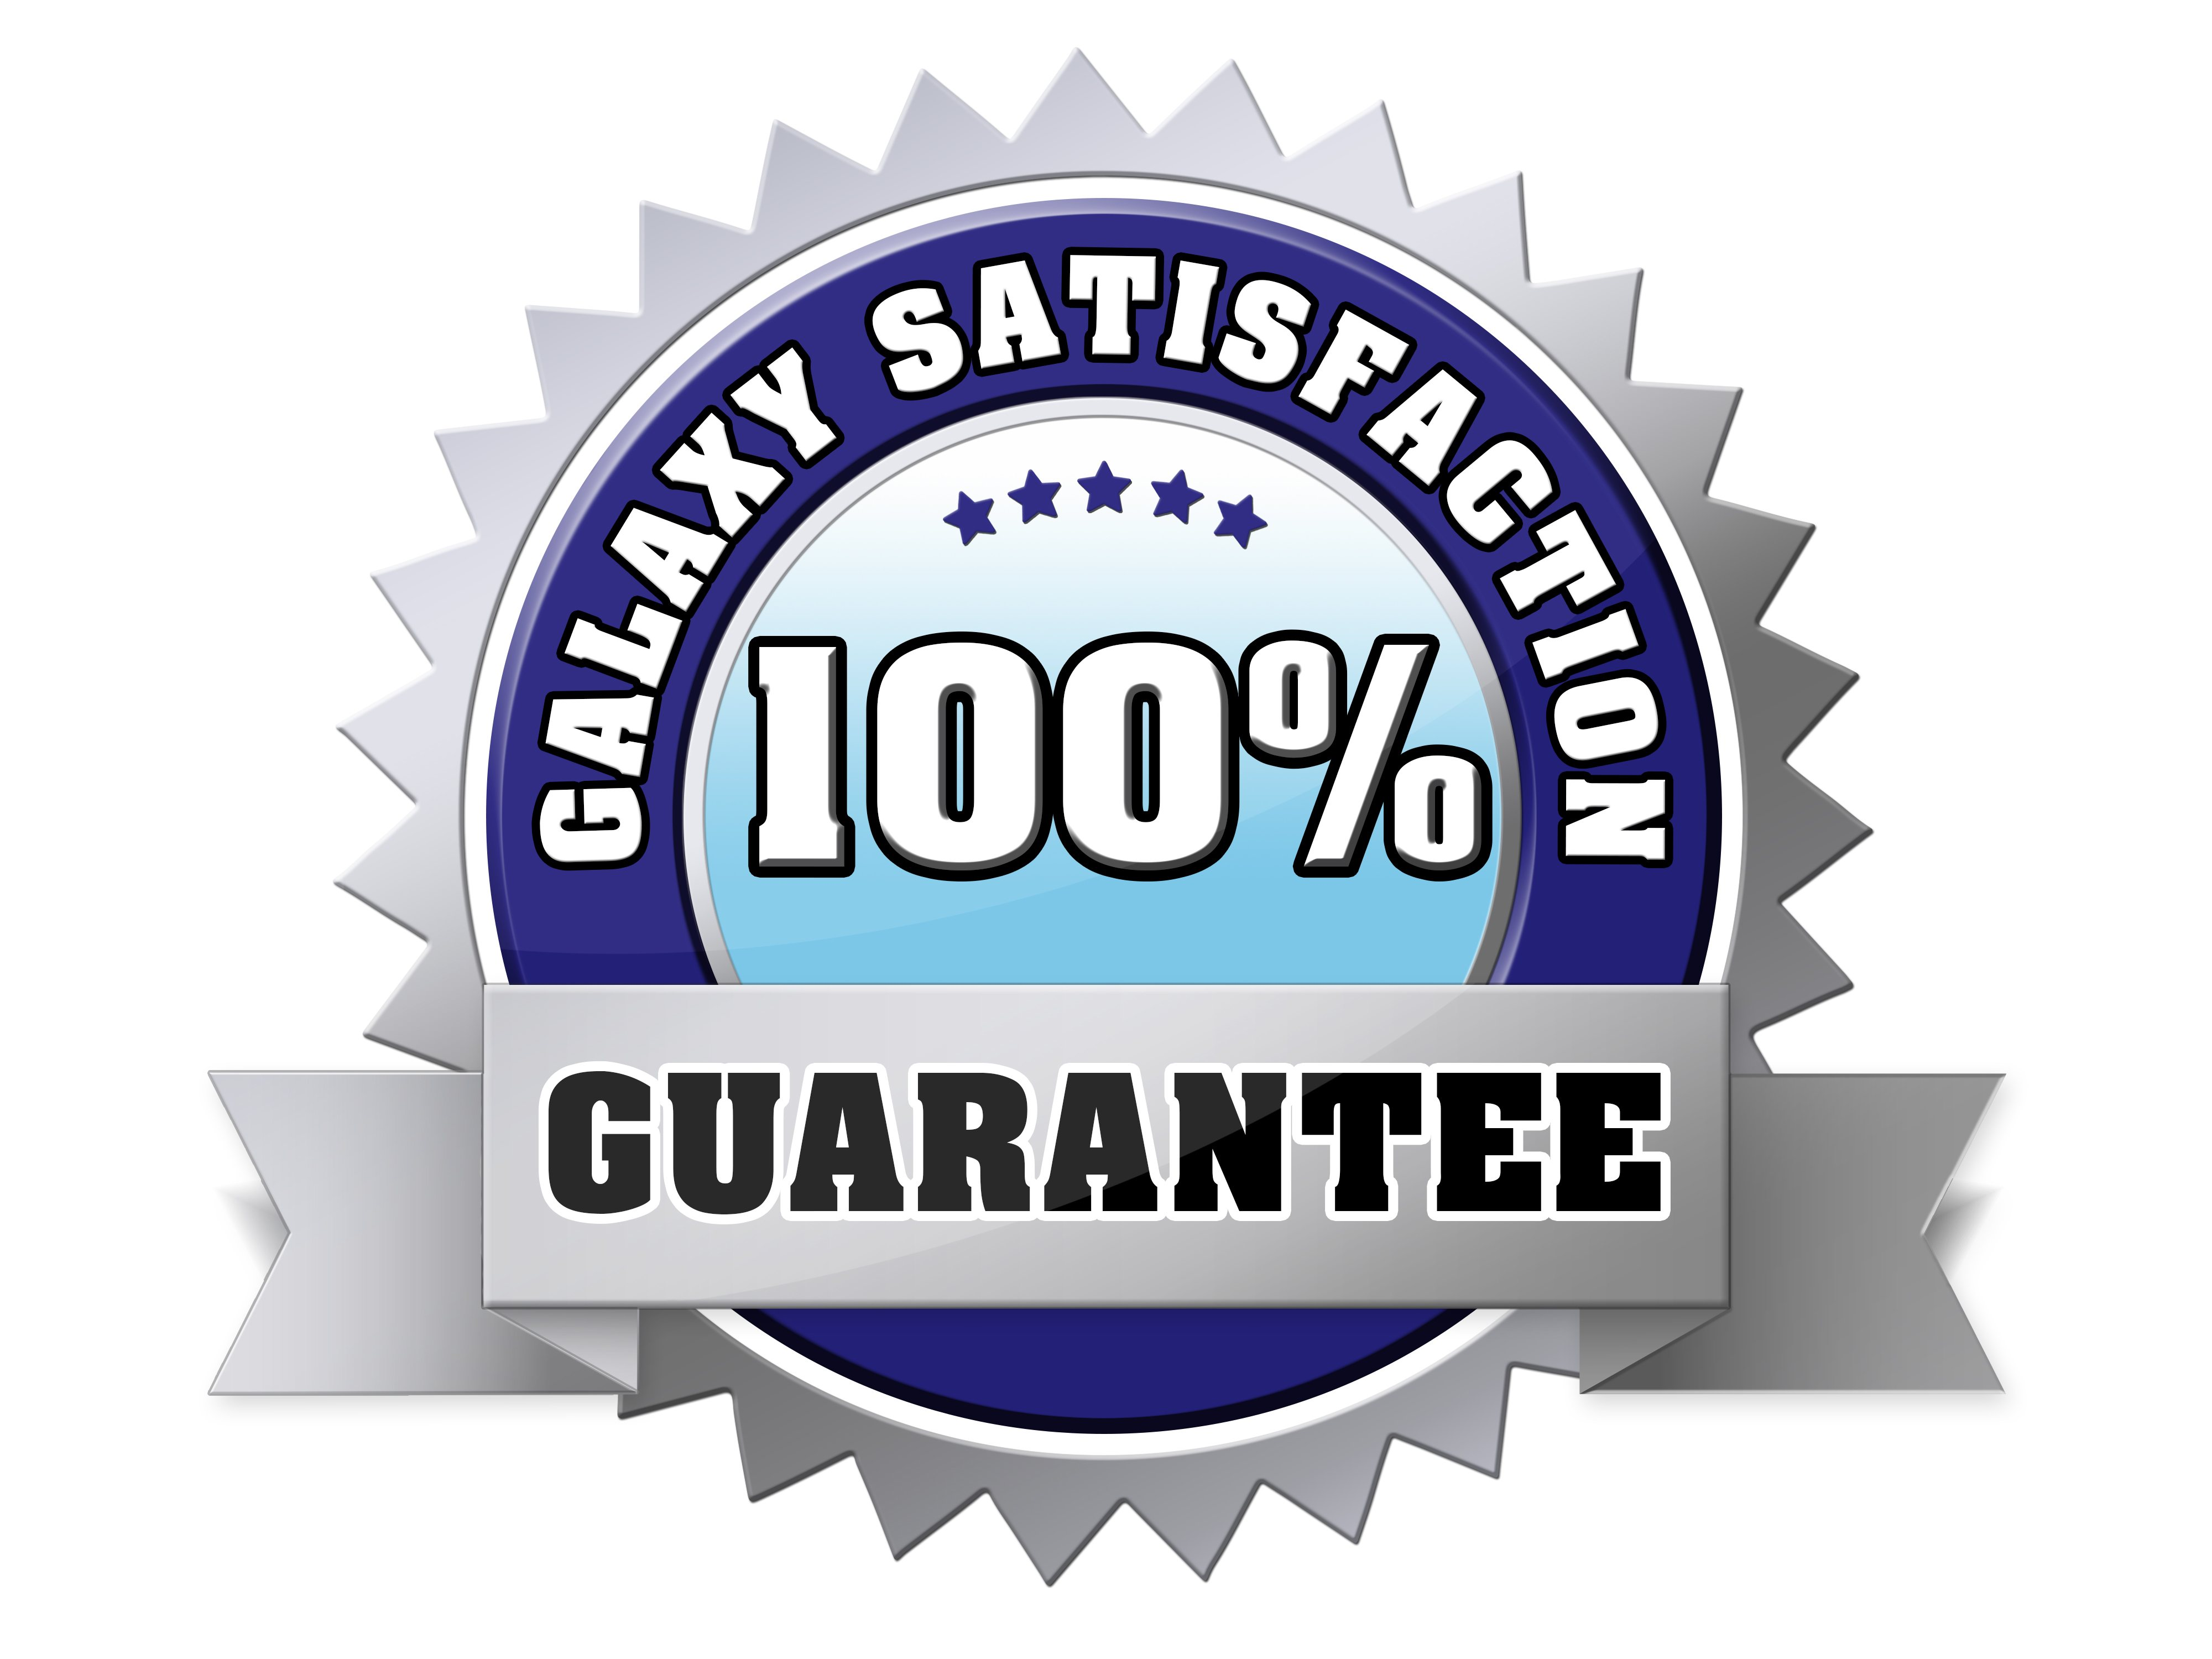 Galaxy Kayaks Satisfaction Guarantee